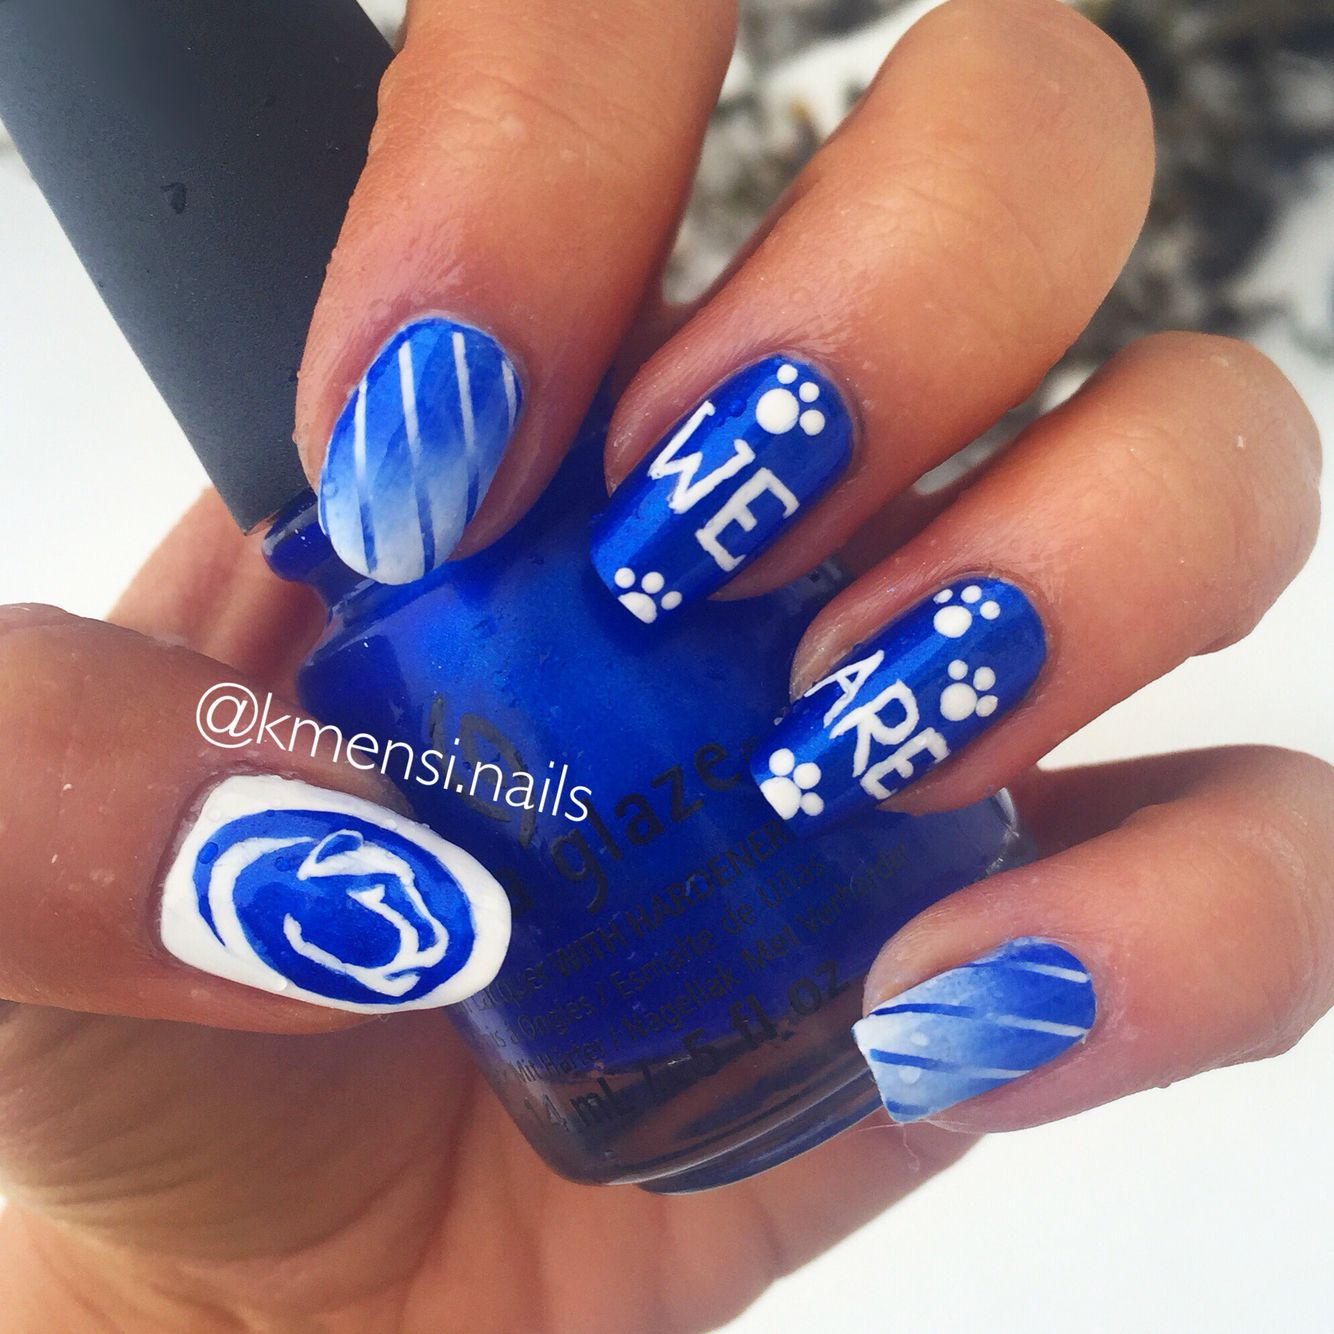 """Penn state """"We Are"""" nail art using china glaze frostbite by @kmensi.nails"""